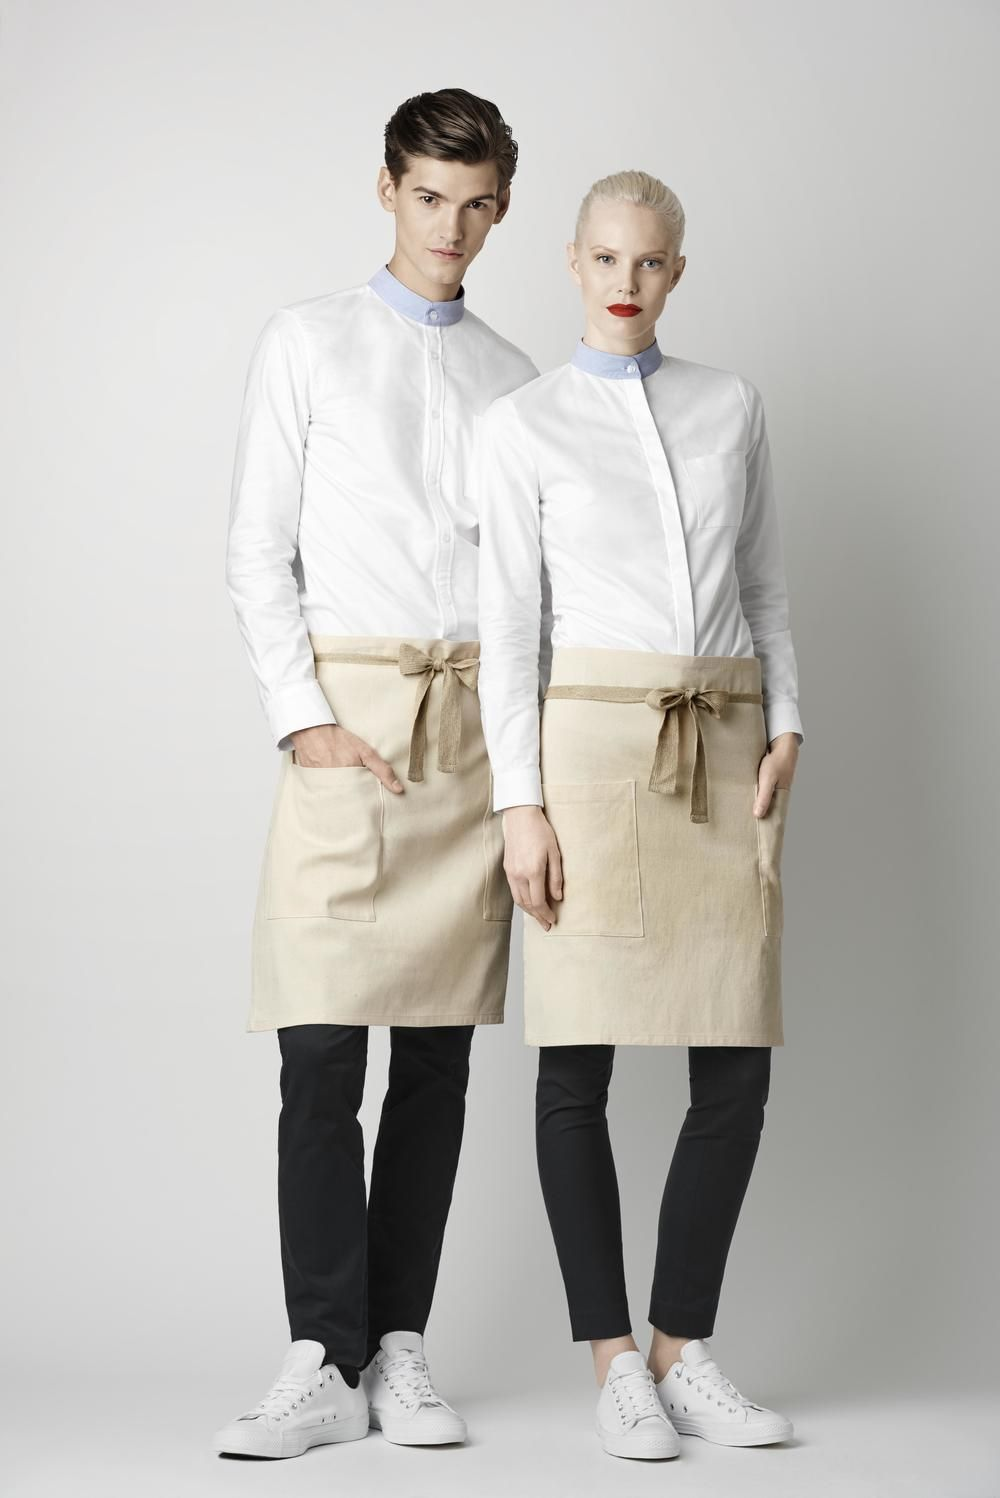 Pin by e on w pinterest apron hotel uniform and for Hotel design jersey